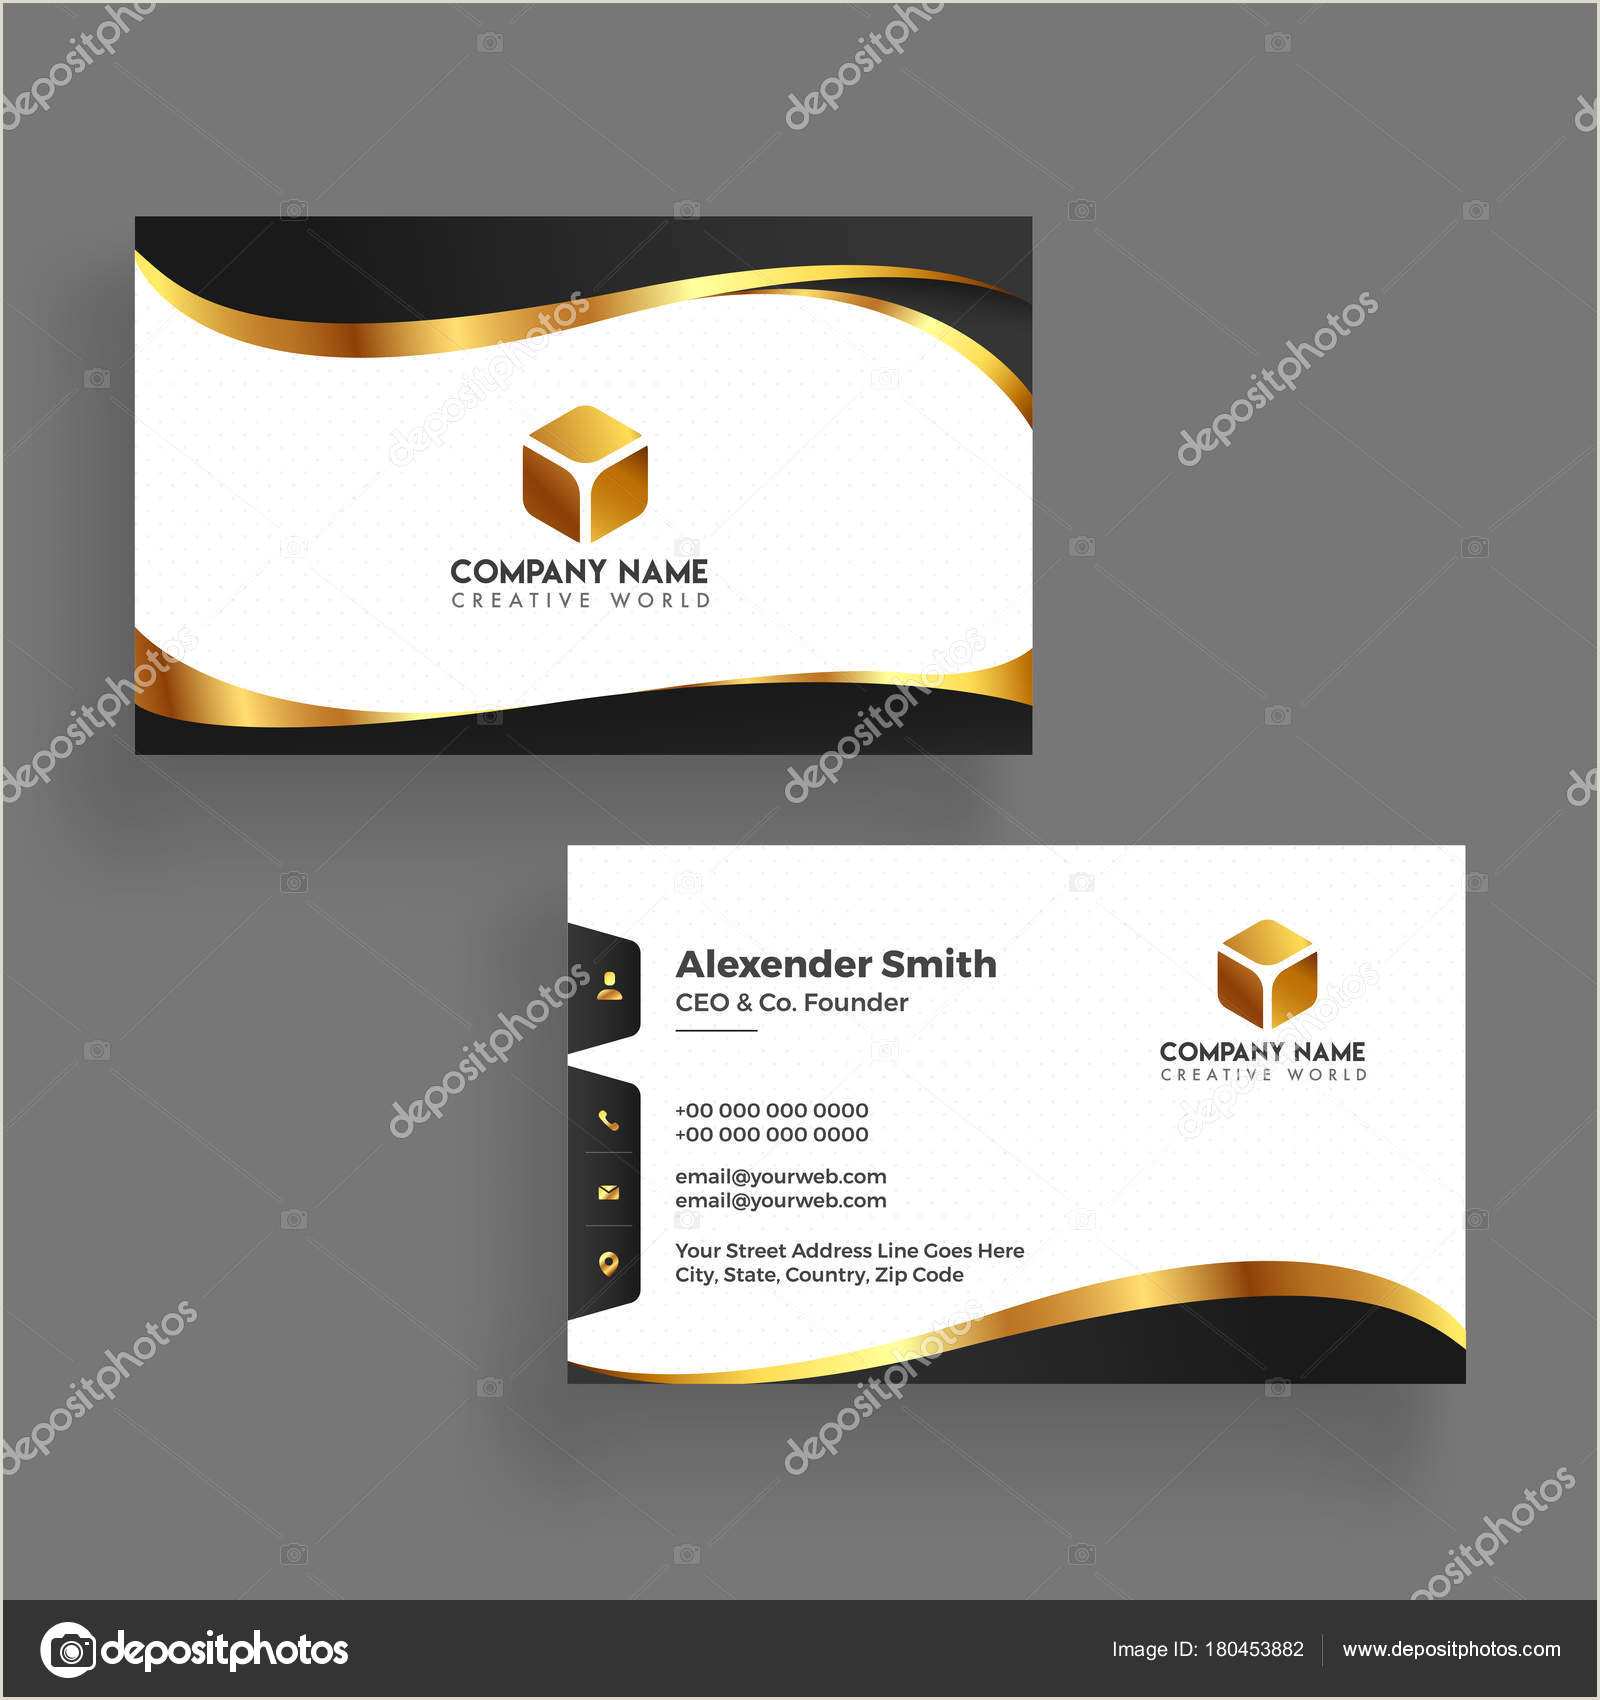 Unique Business Cards Front And Back Modern Business Card Template Design Both Sided Contact Card F